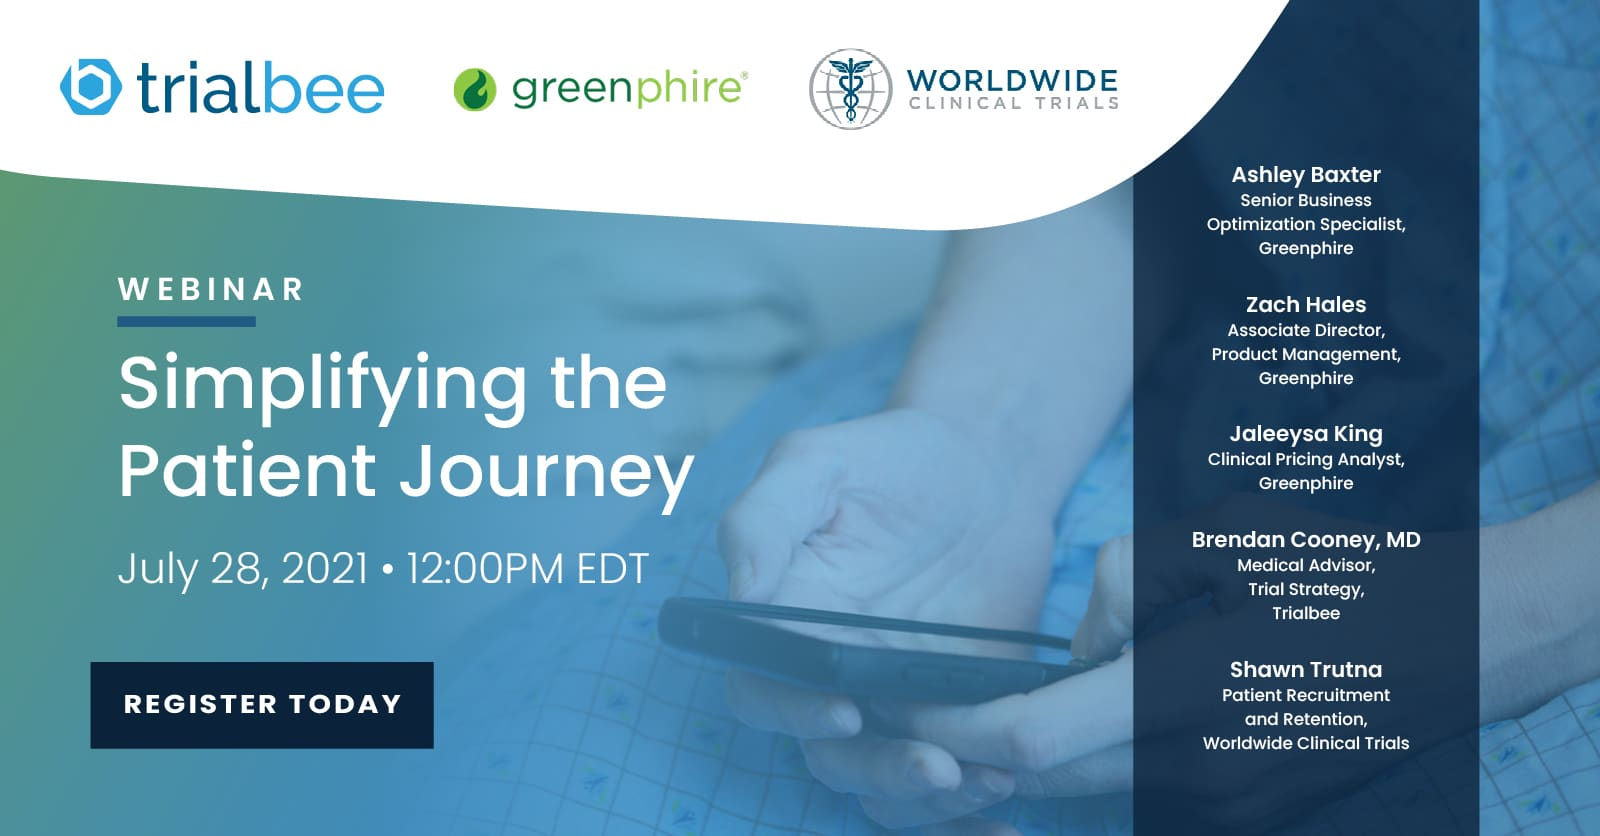 Simplifying the Patient Journey: Driving Enrolment and Retention Through Technology